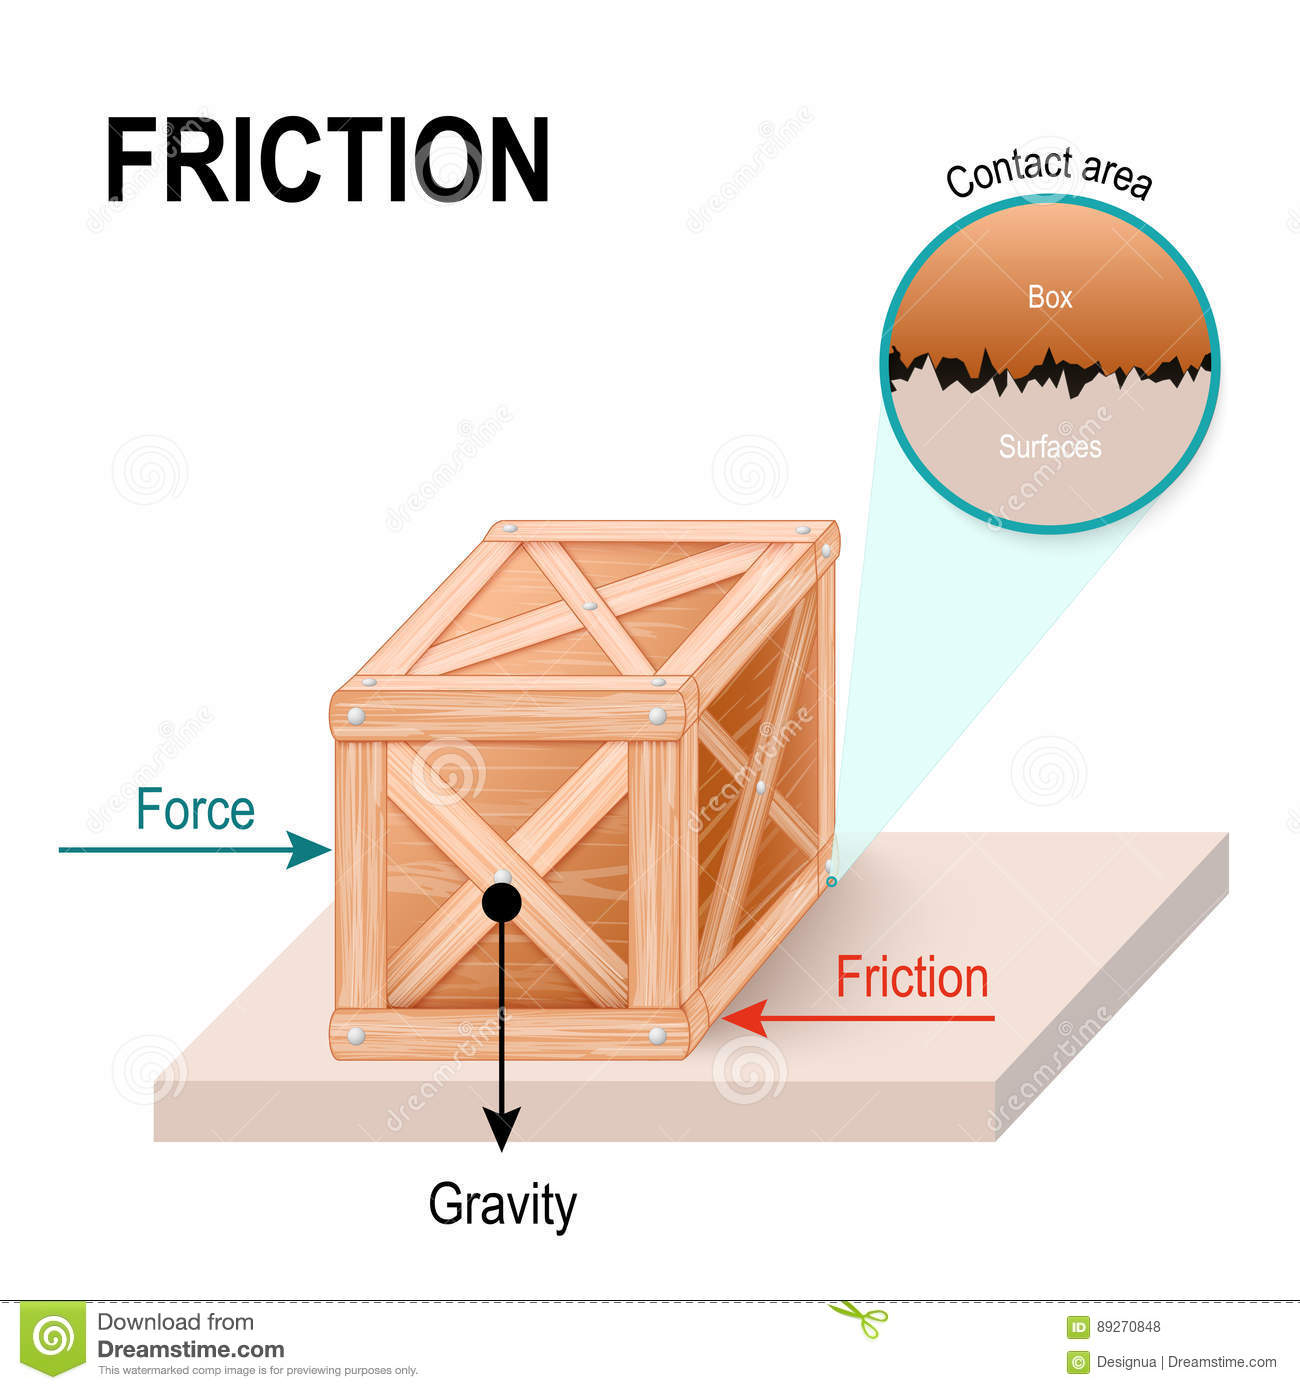 friction on a surface The friction of microstructured polydimethylsiloxane samples against a glass surface is studied through force measurements and simultaneous optical microscopy both average friction forces and the amplitude of stick-slip oscillations are greatly reduced by the structuring.